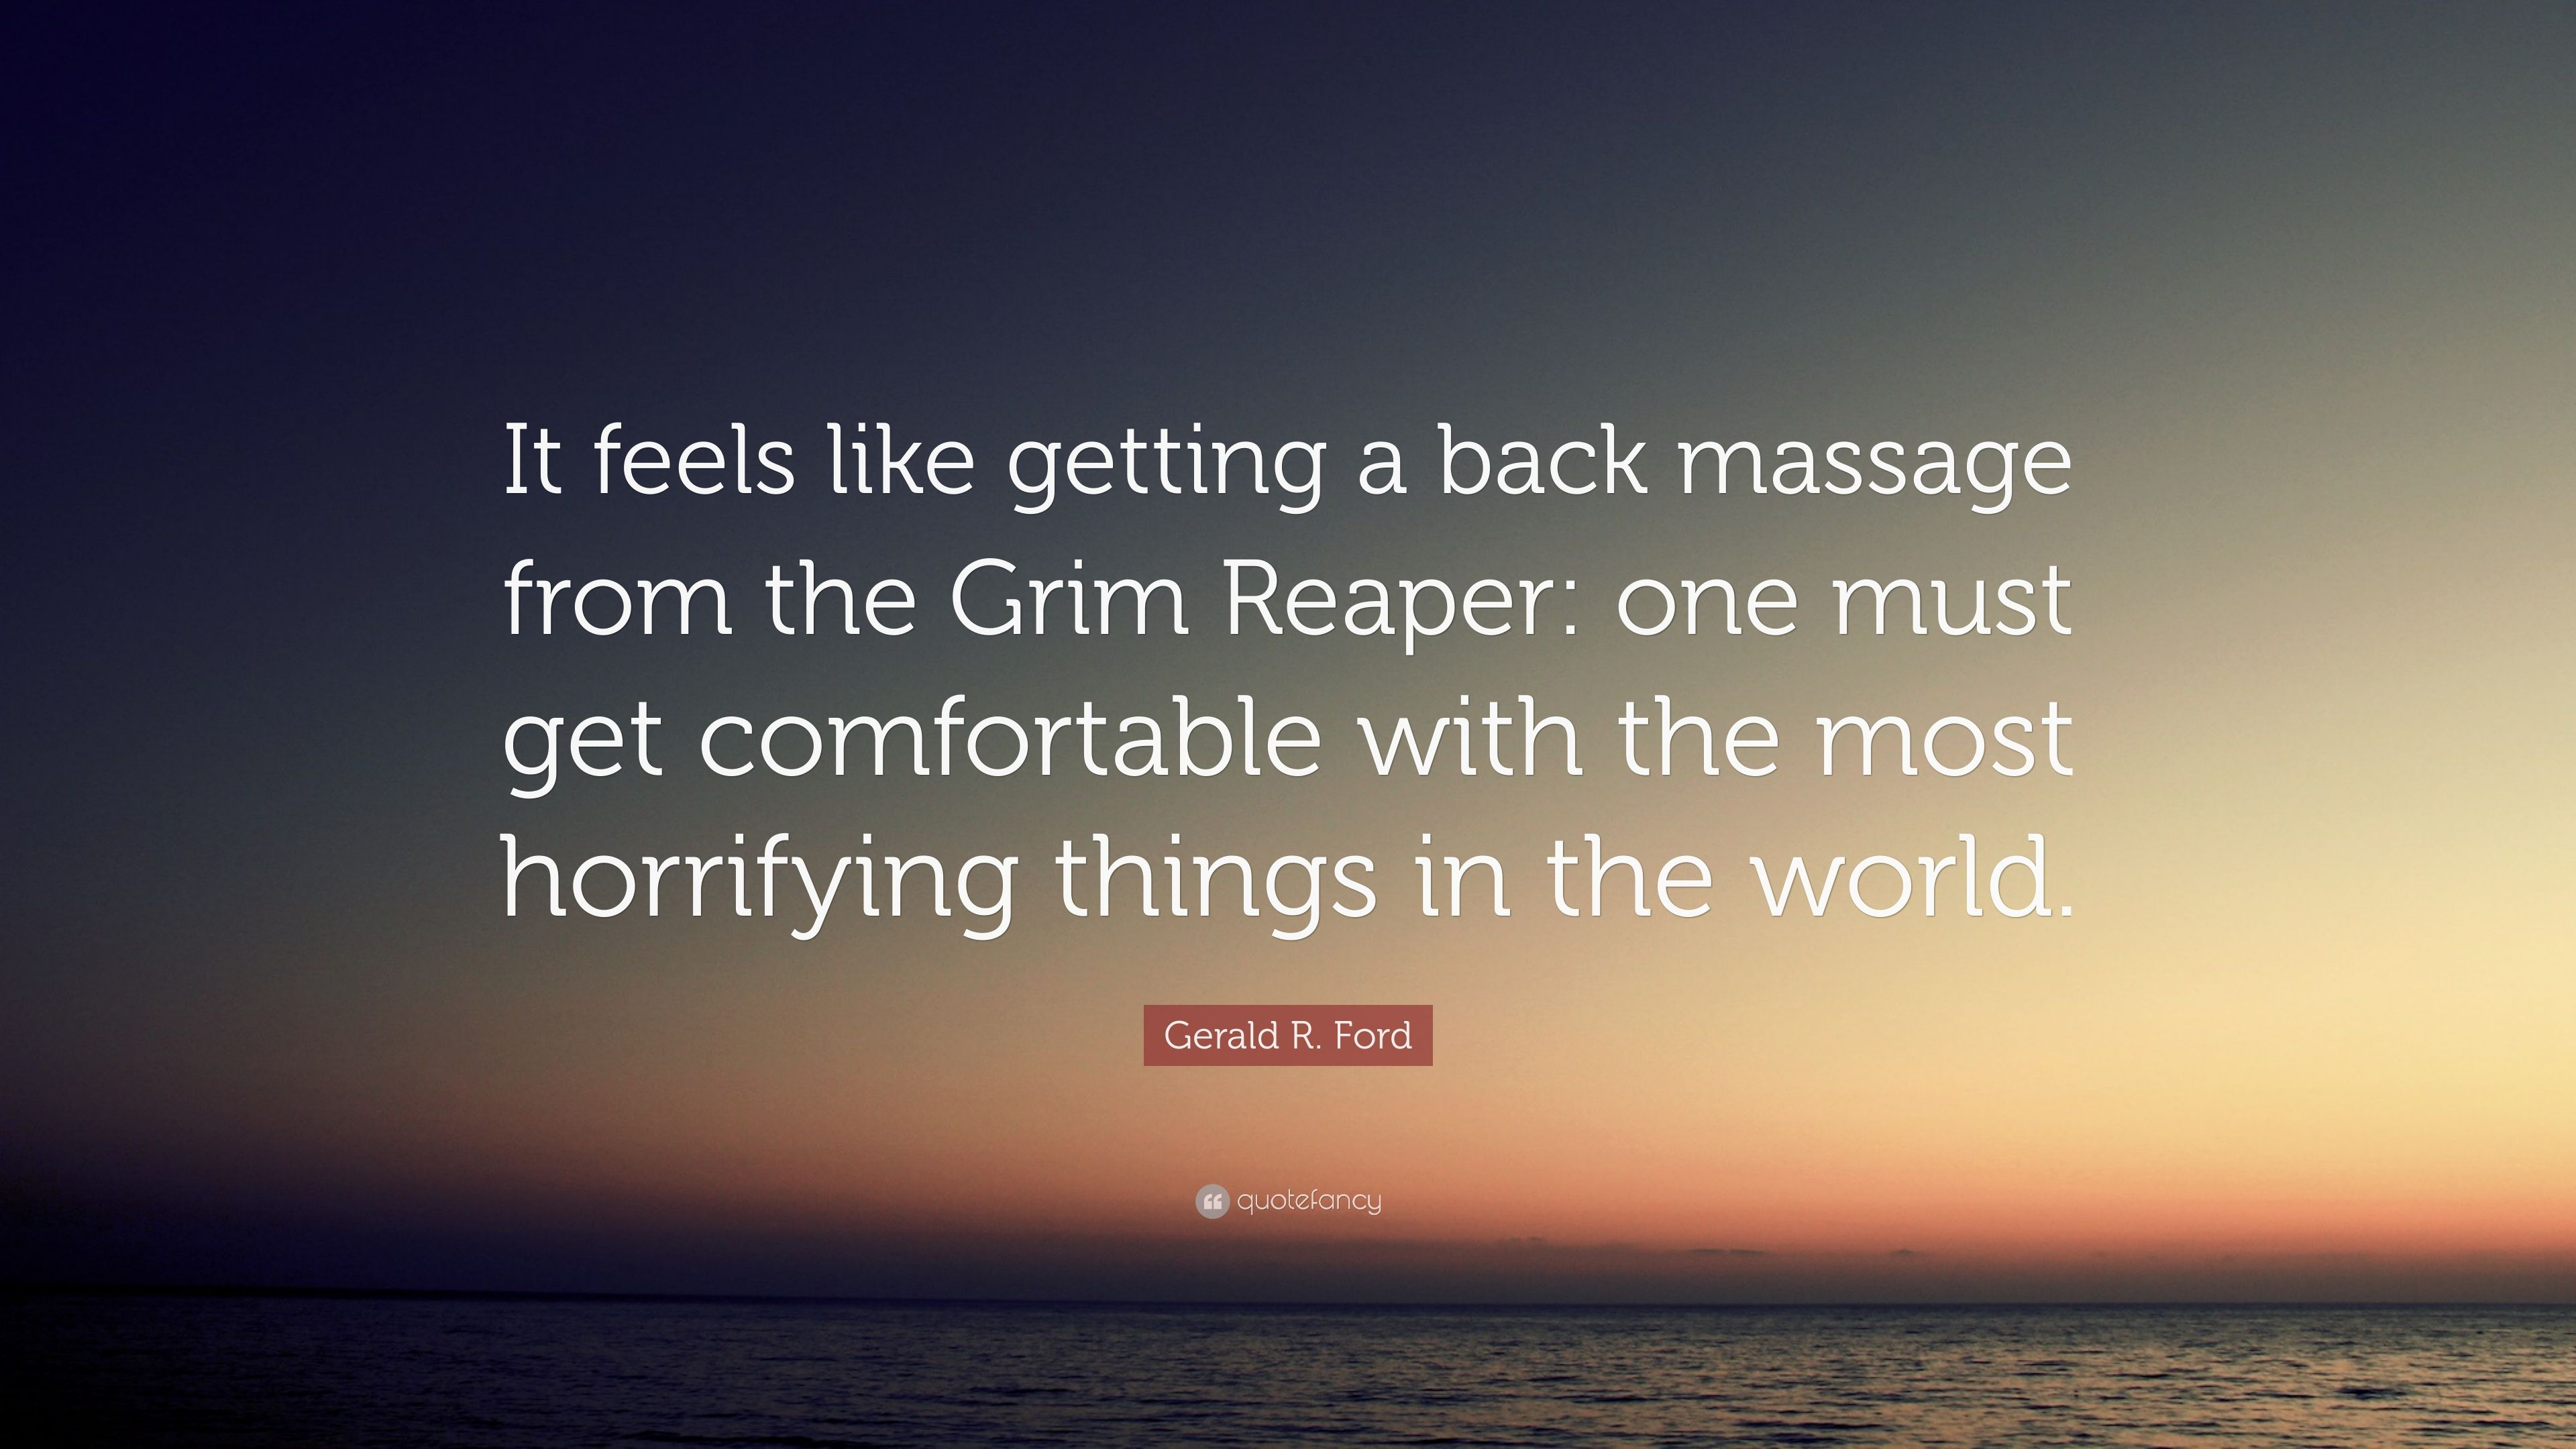 "Gerald Ford Quotes Unique Gerald Rford Quote ""It Feels Like Getting A Back Massage From"